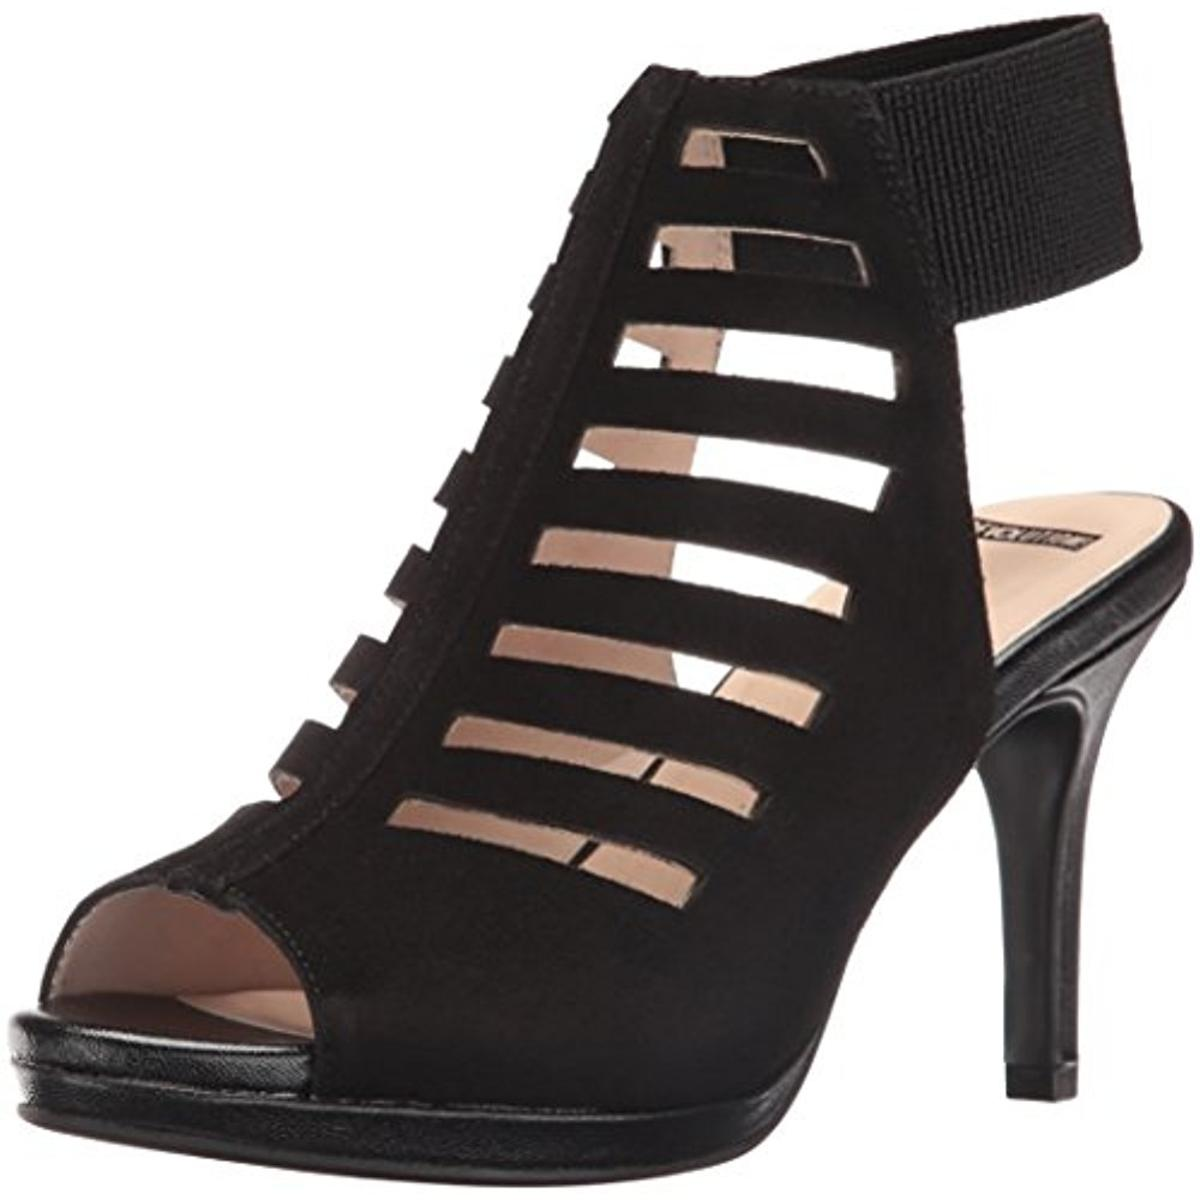 Lifestride Womens Absolutely Not Suede Cut-Out Dress Pumps by LifeStride